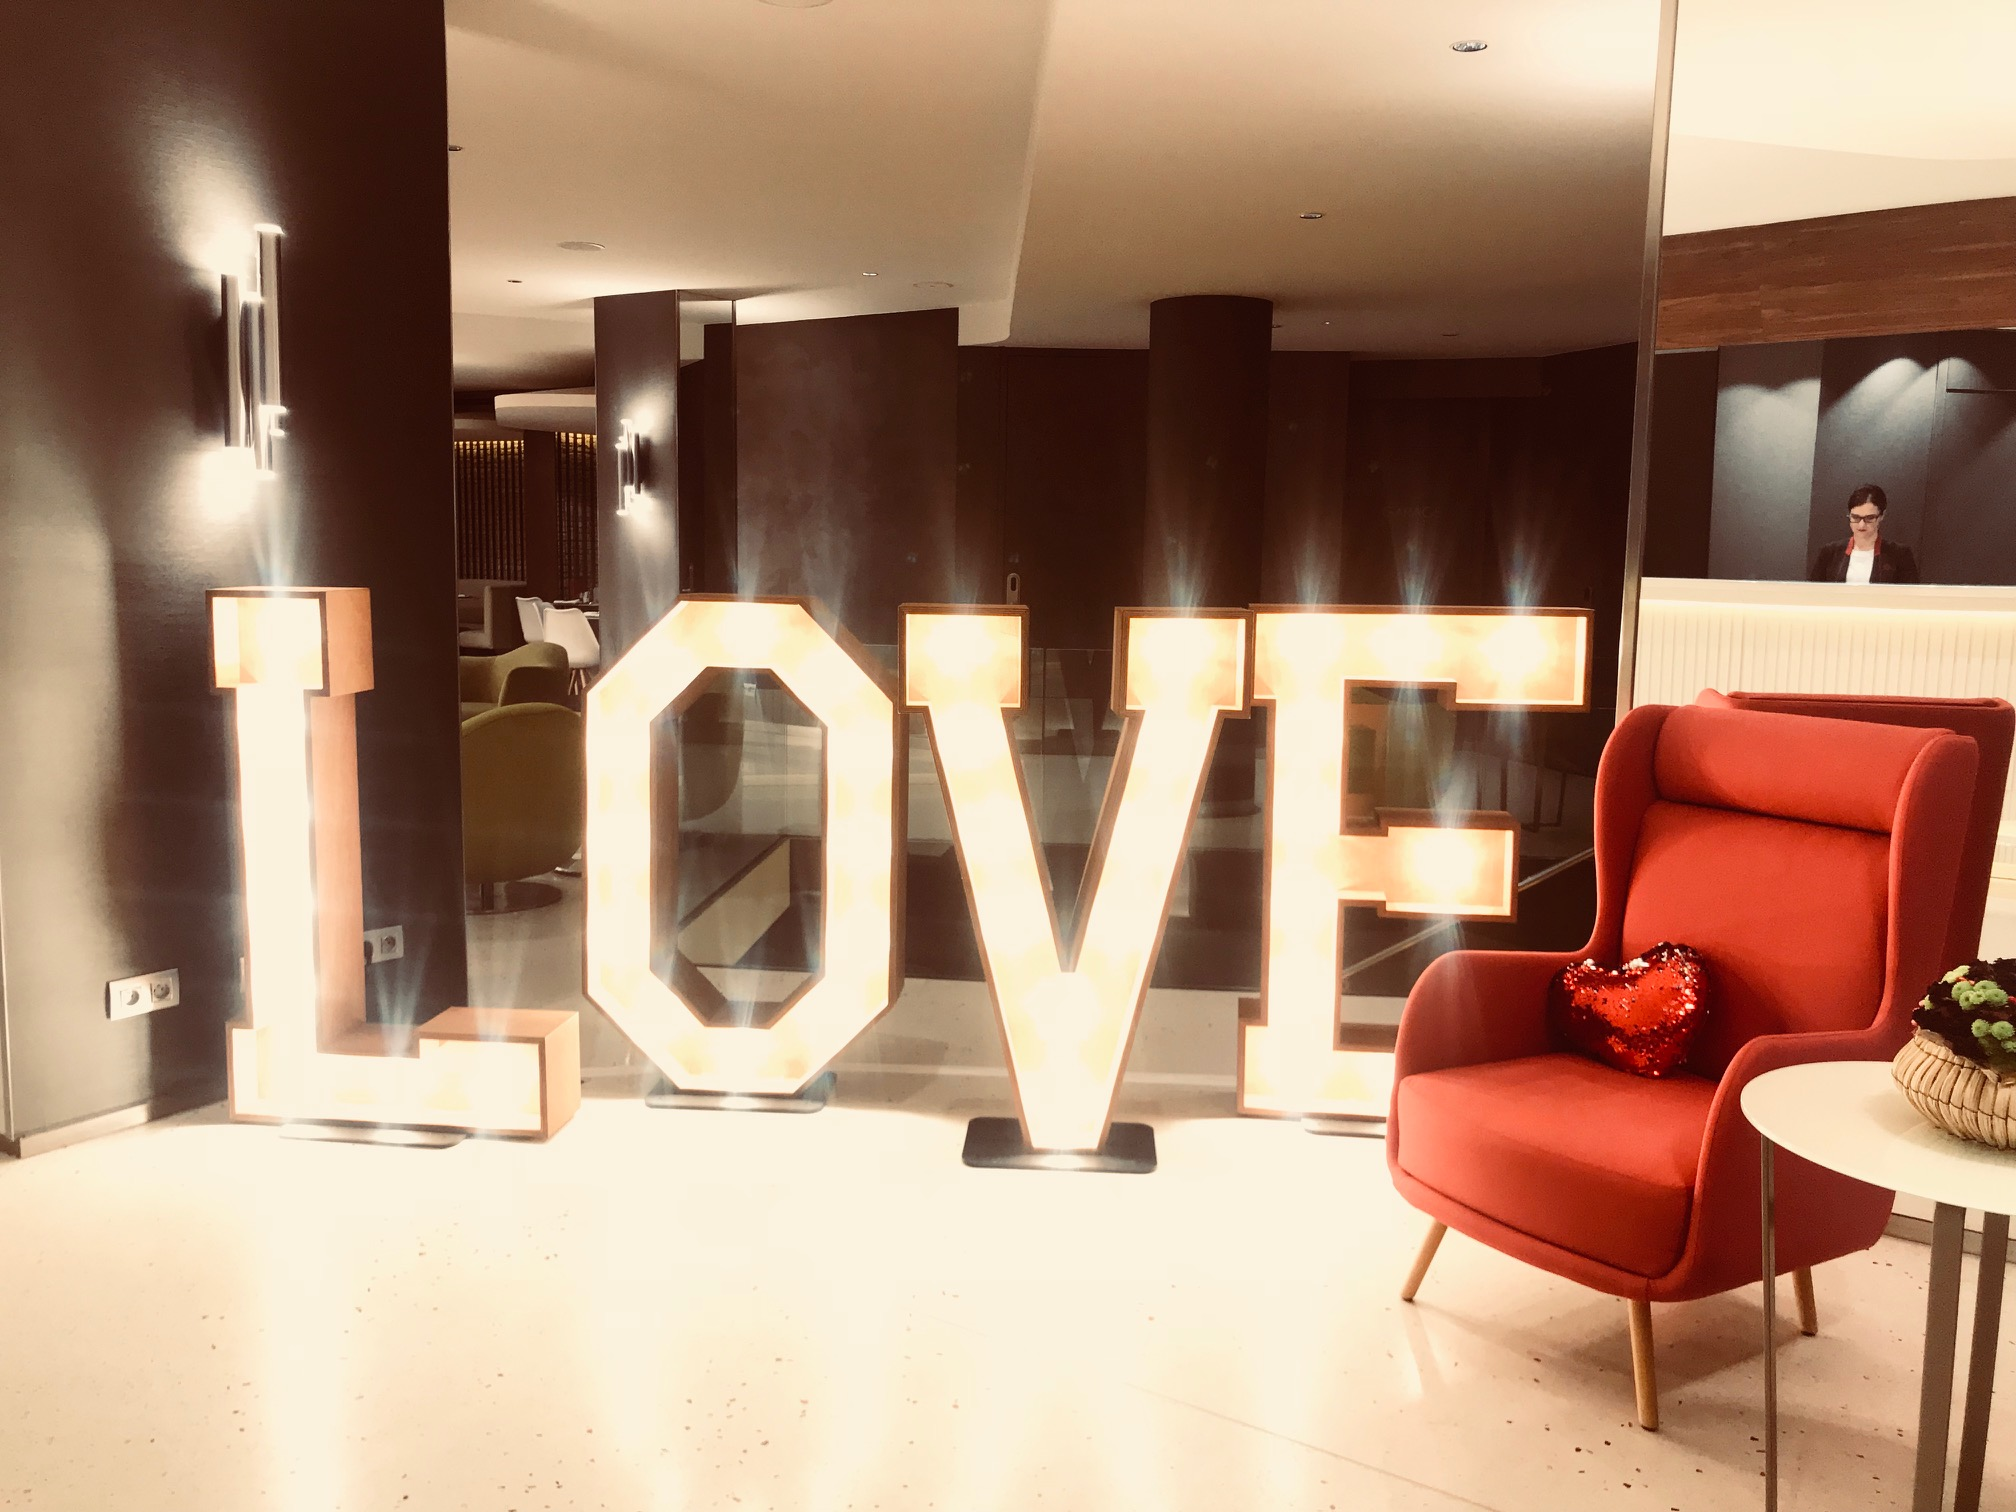 Flashletters_-_LOVE_-_NH_Hôtel_01